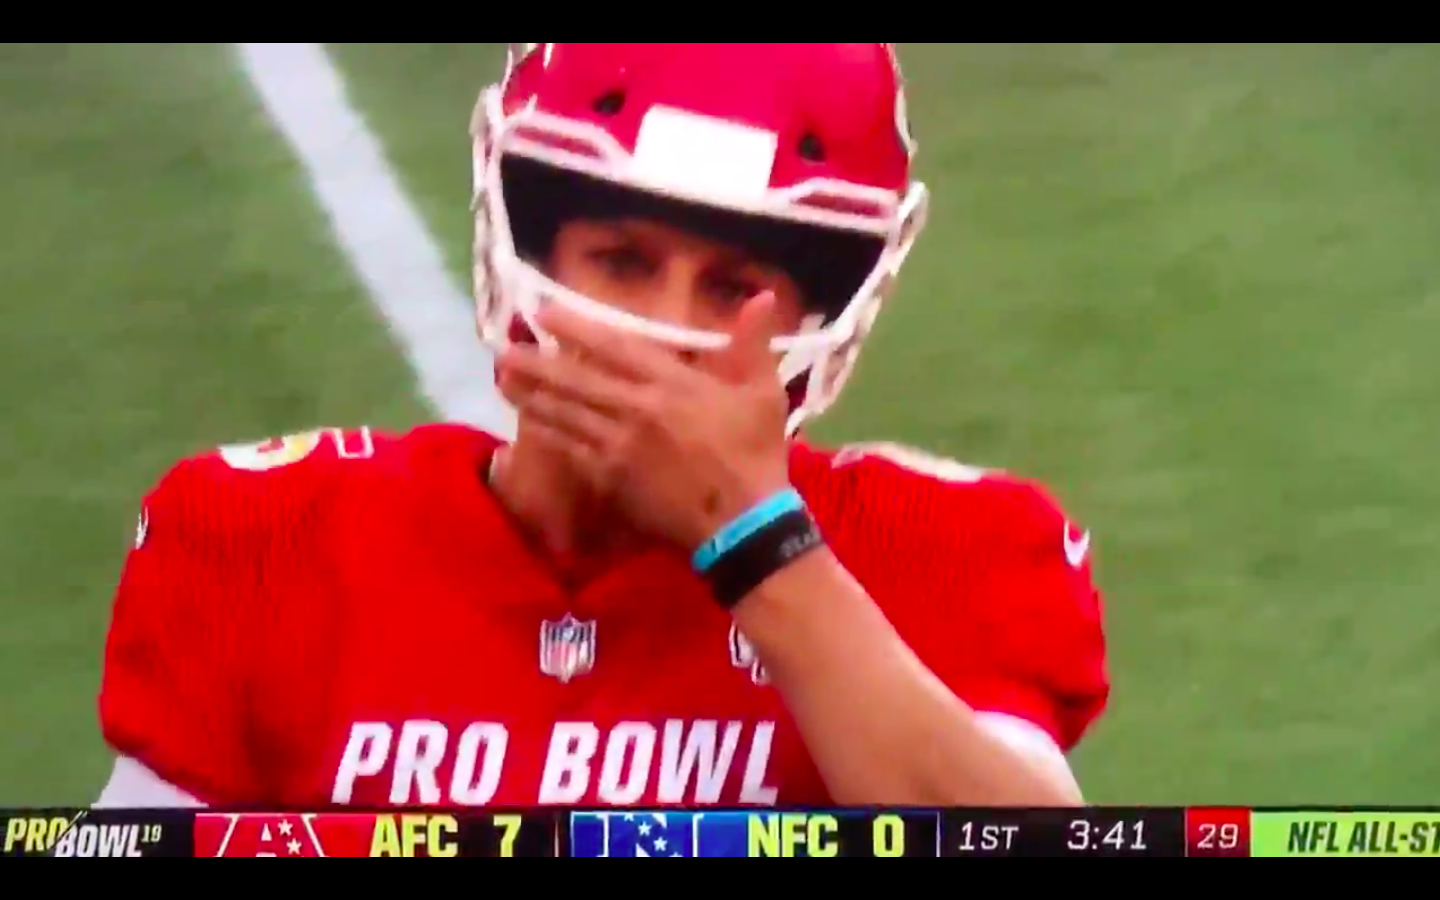 ac514263d54 Patrick Mahomes immediately — and hilariously — regretted the f-bomb he  dropped at the Pro Bowl